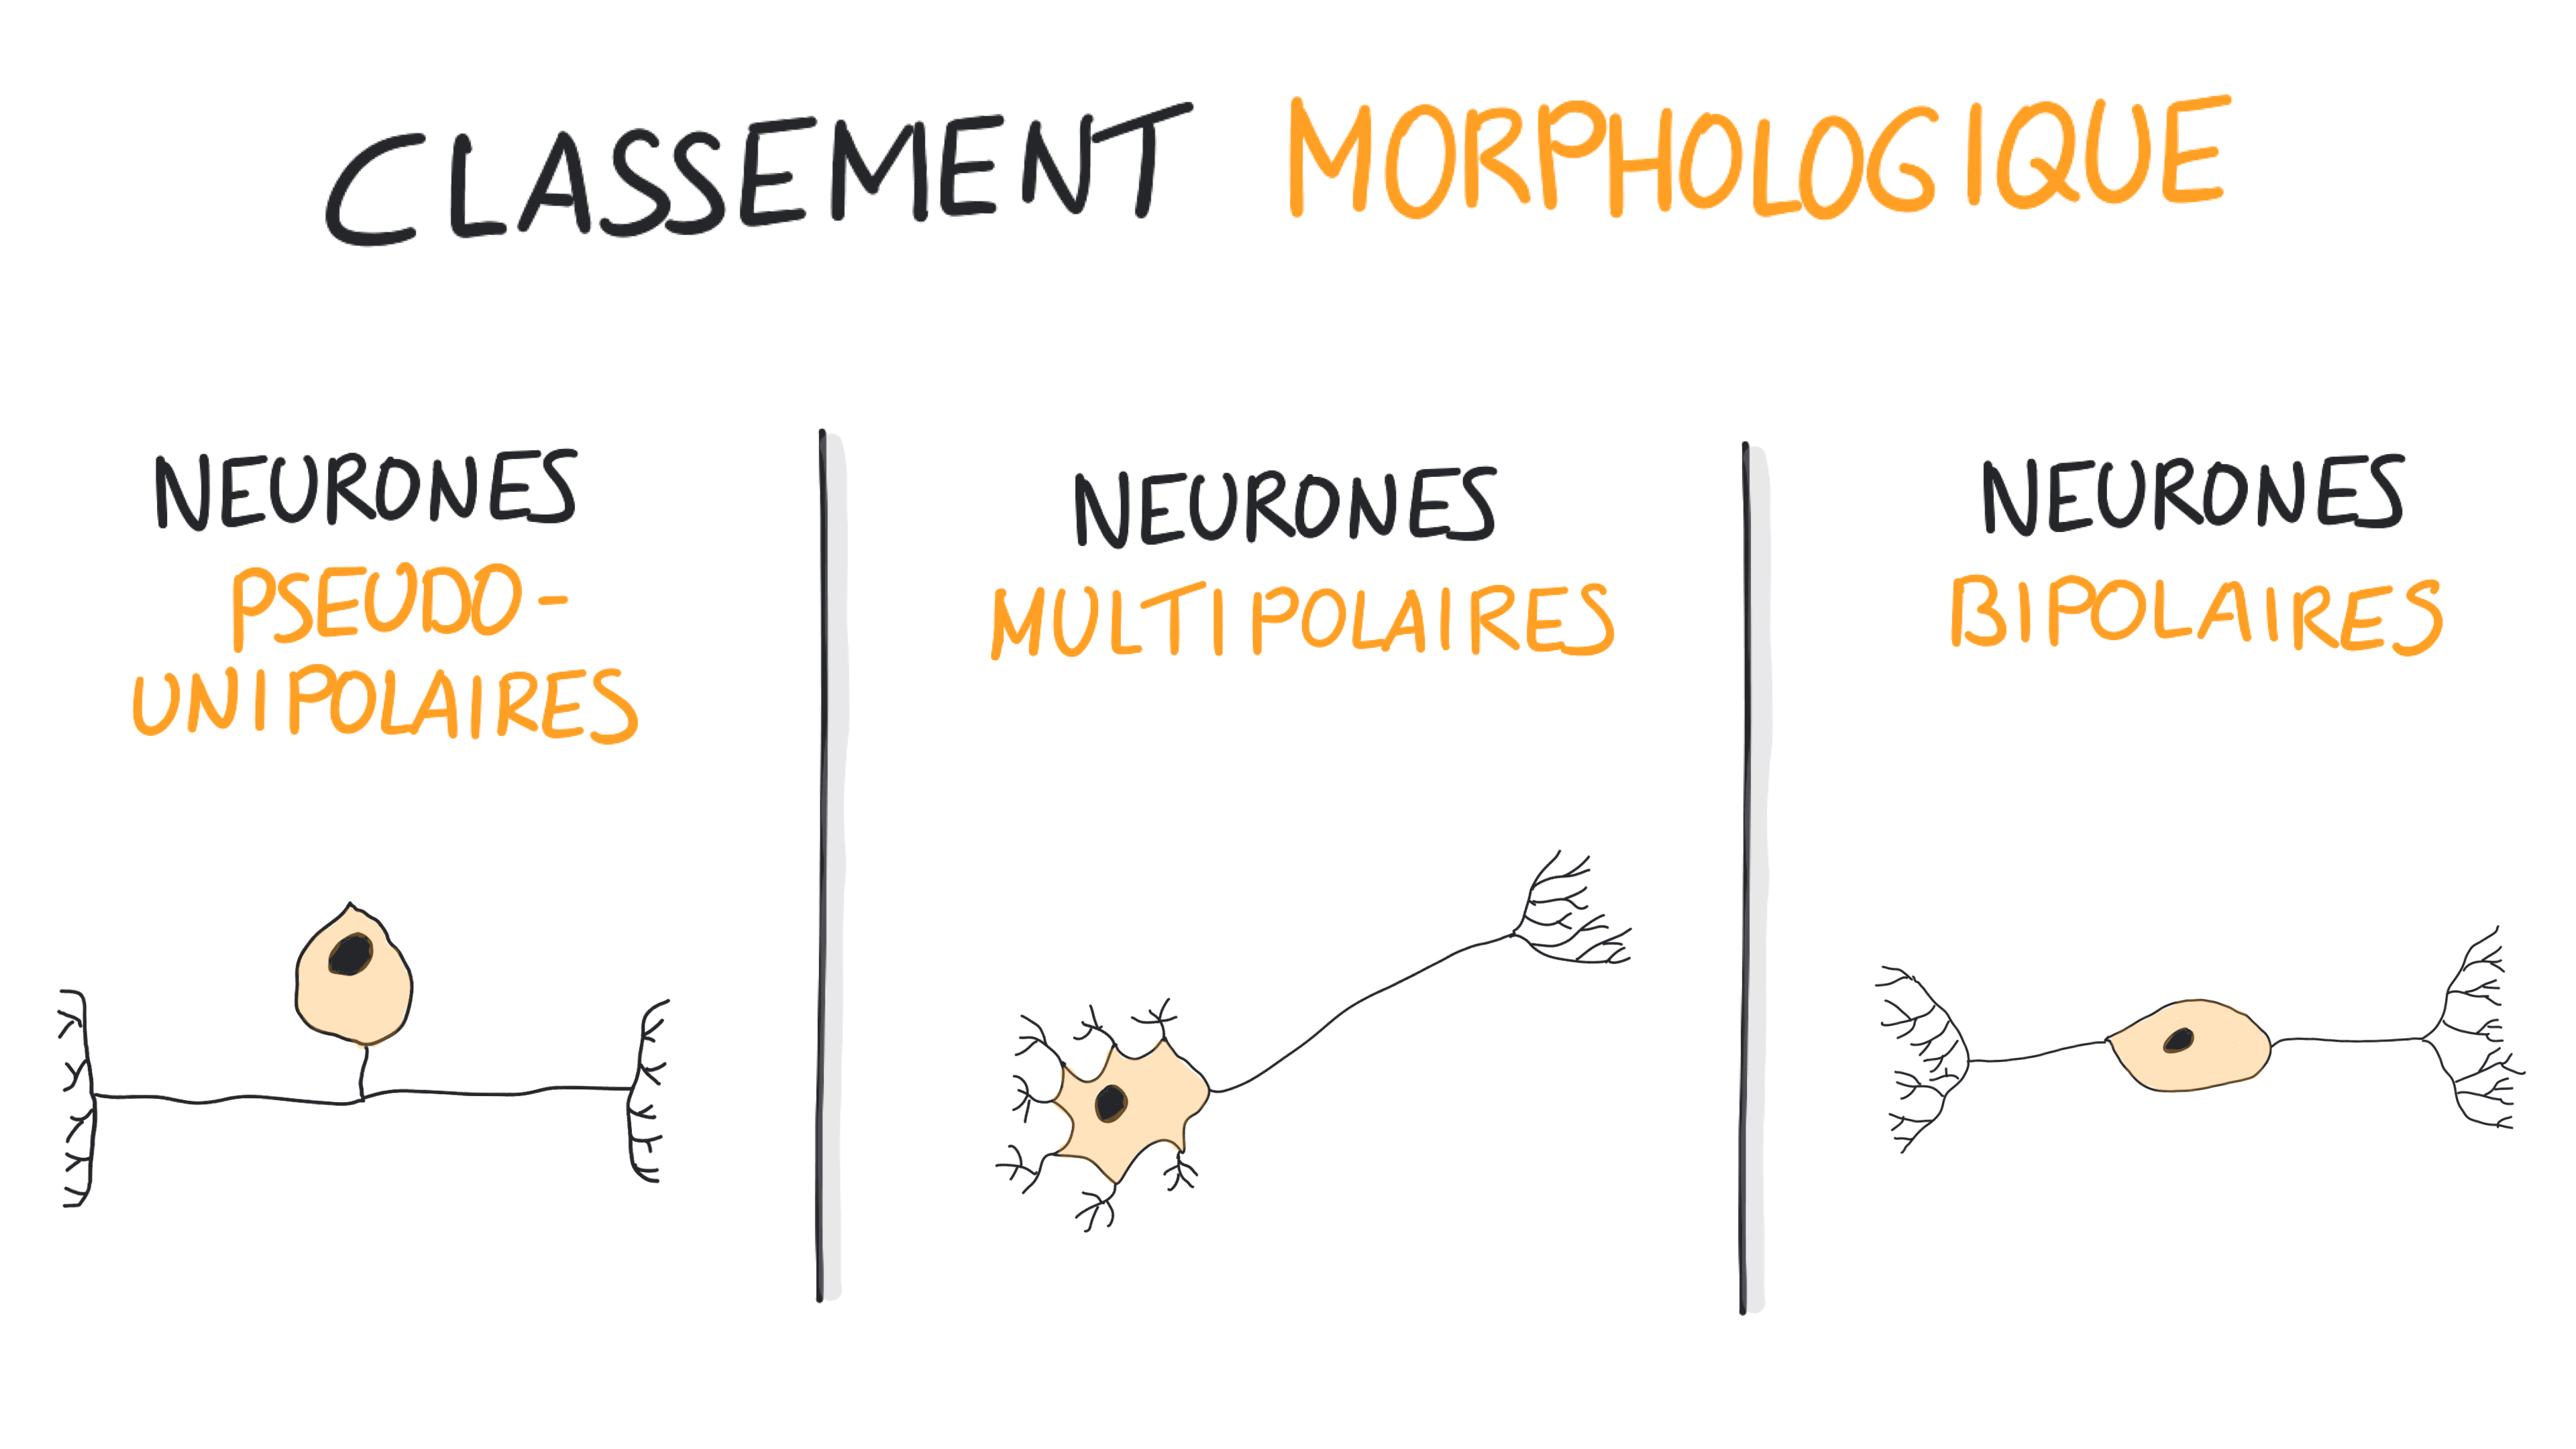 Classification morphologique